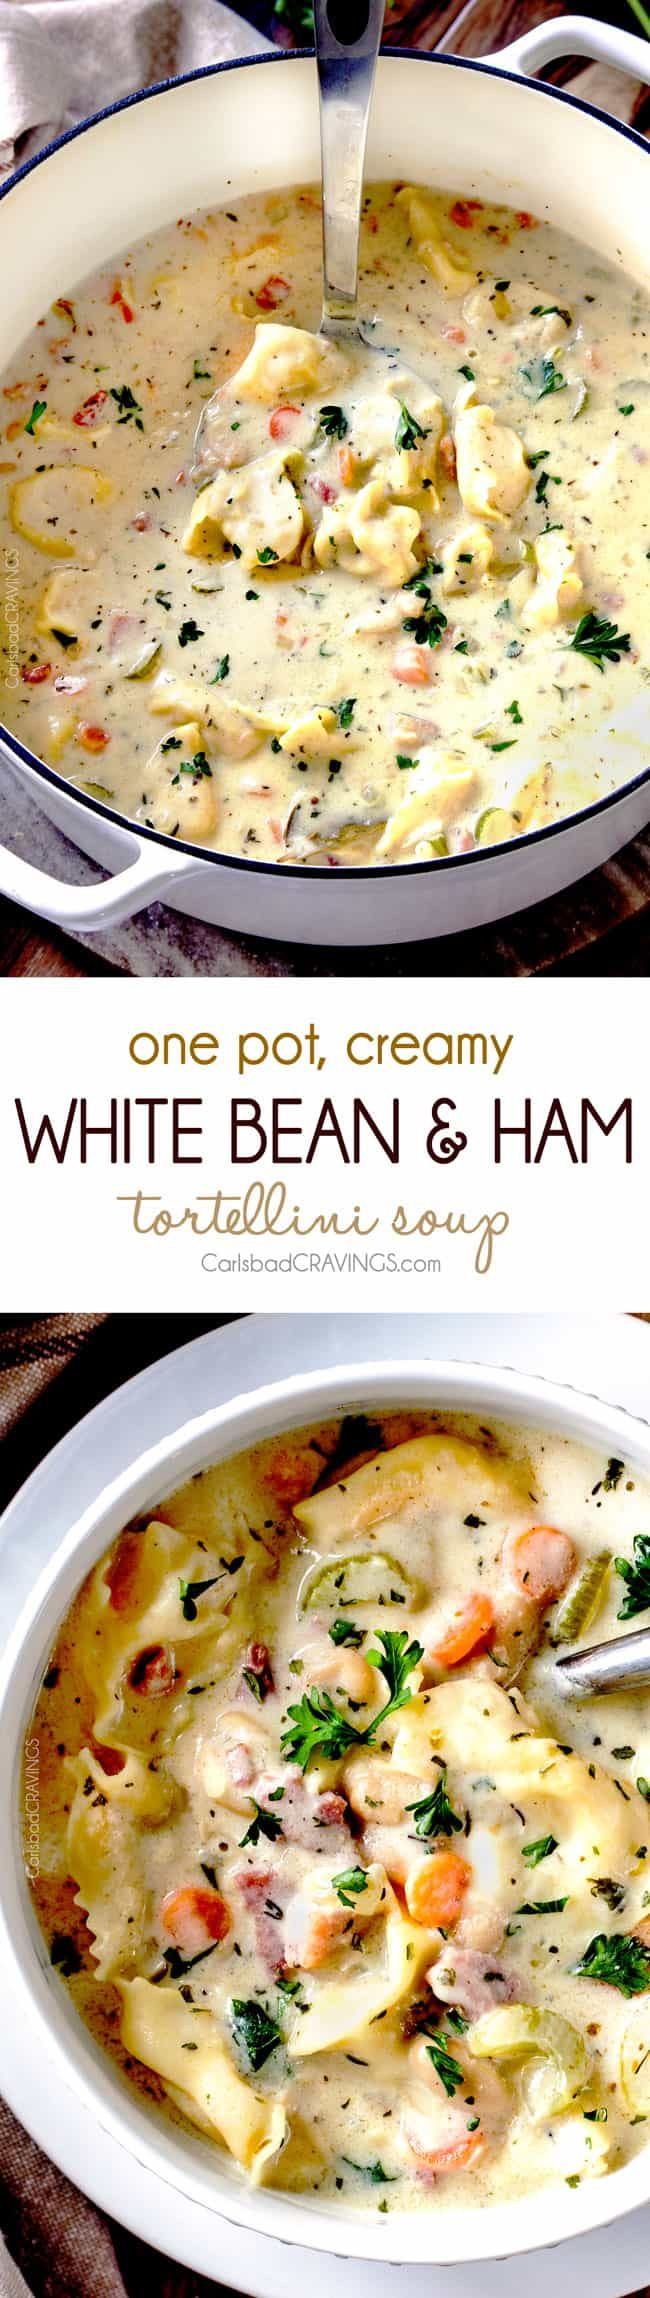 hearty, cozy, Creamy White Bean and Ham Tortellini Soup simmered with onions, carrots, celery and seasonings is SO easy and lick your bowl delicious! love the addition of cheesy tortellini!